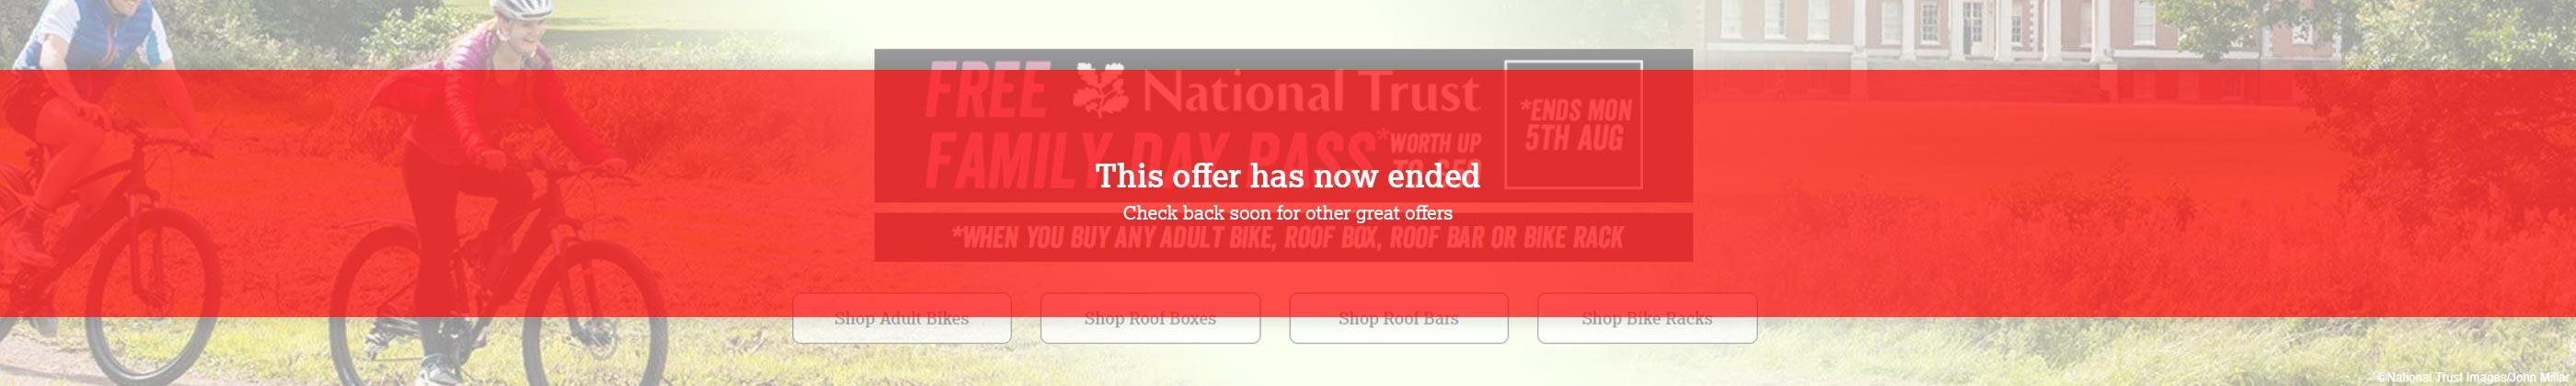 Our National Trust promotion has now ended. Check back soon for other great offers